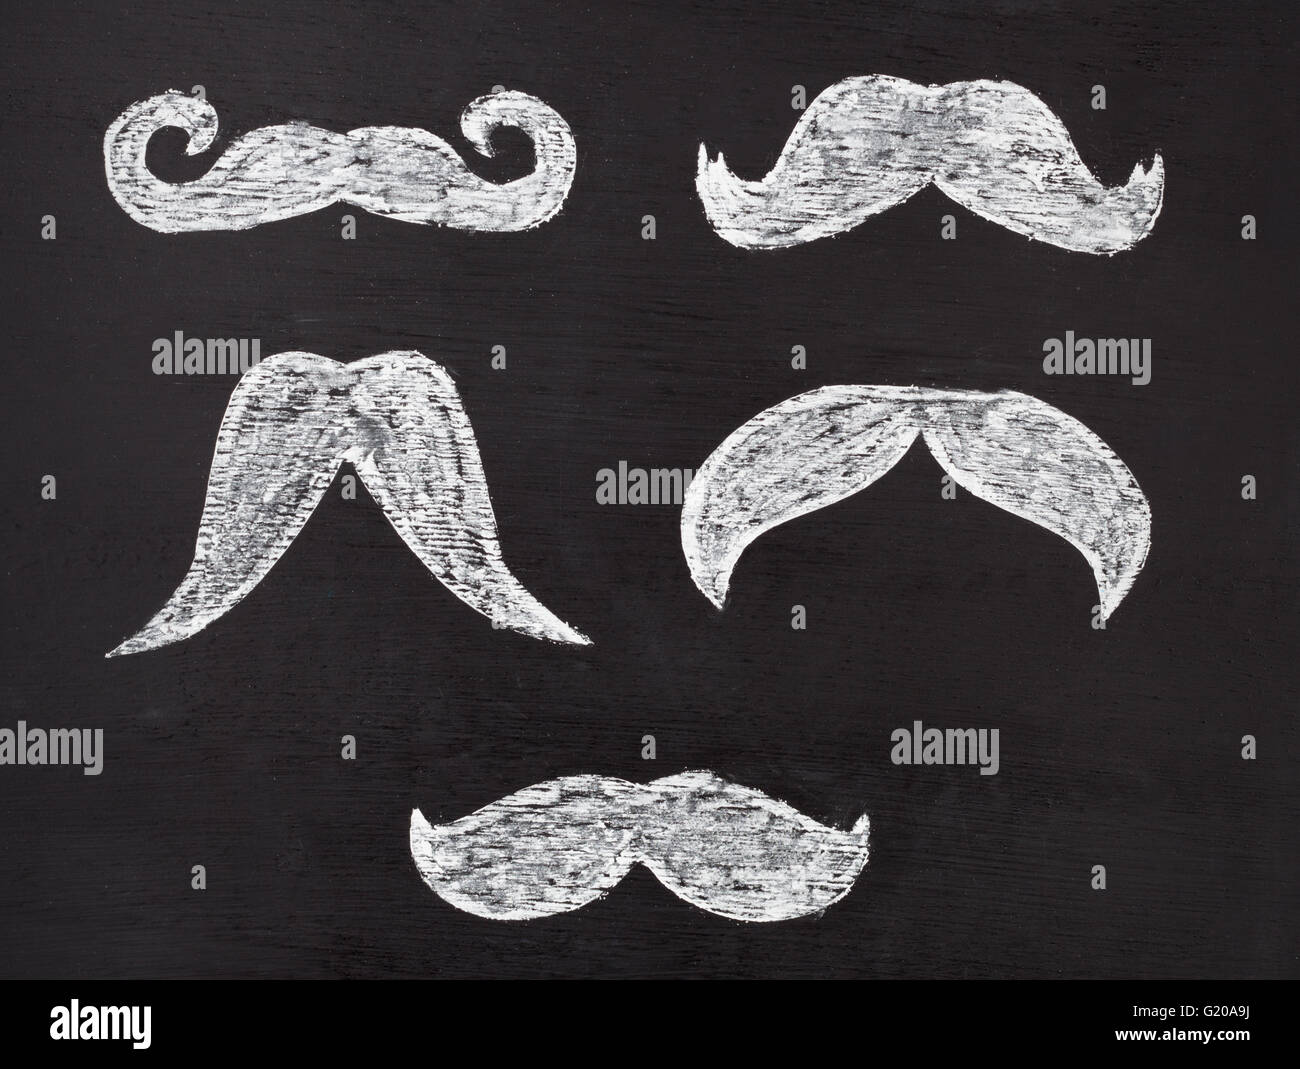 Set of white moustaches hand drawn with chalk on blackboard. Movember men's health awareness concept. - Stock Image